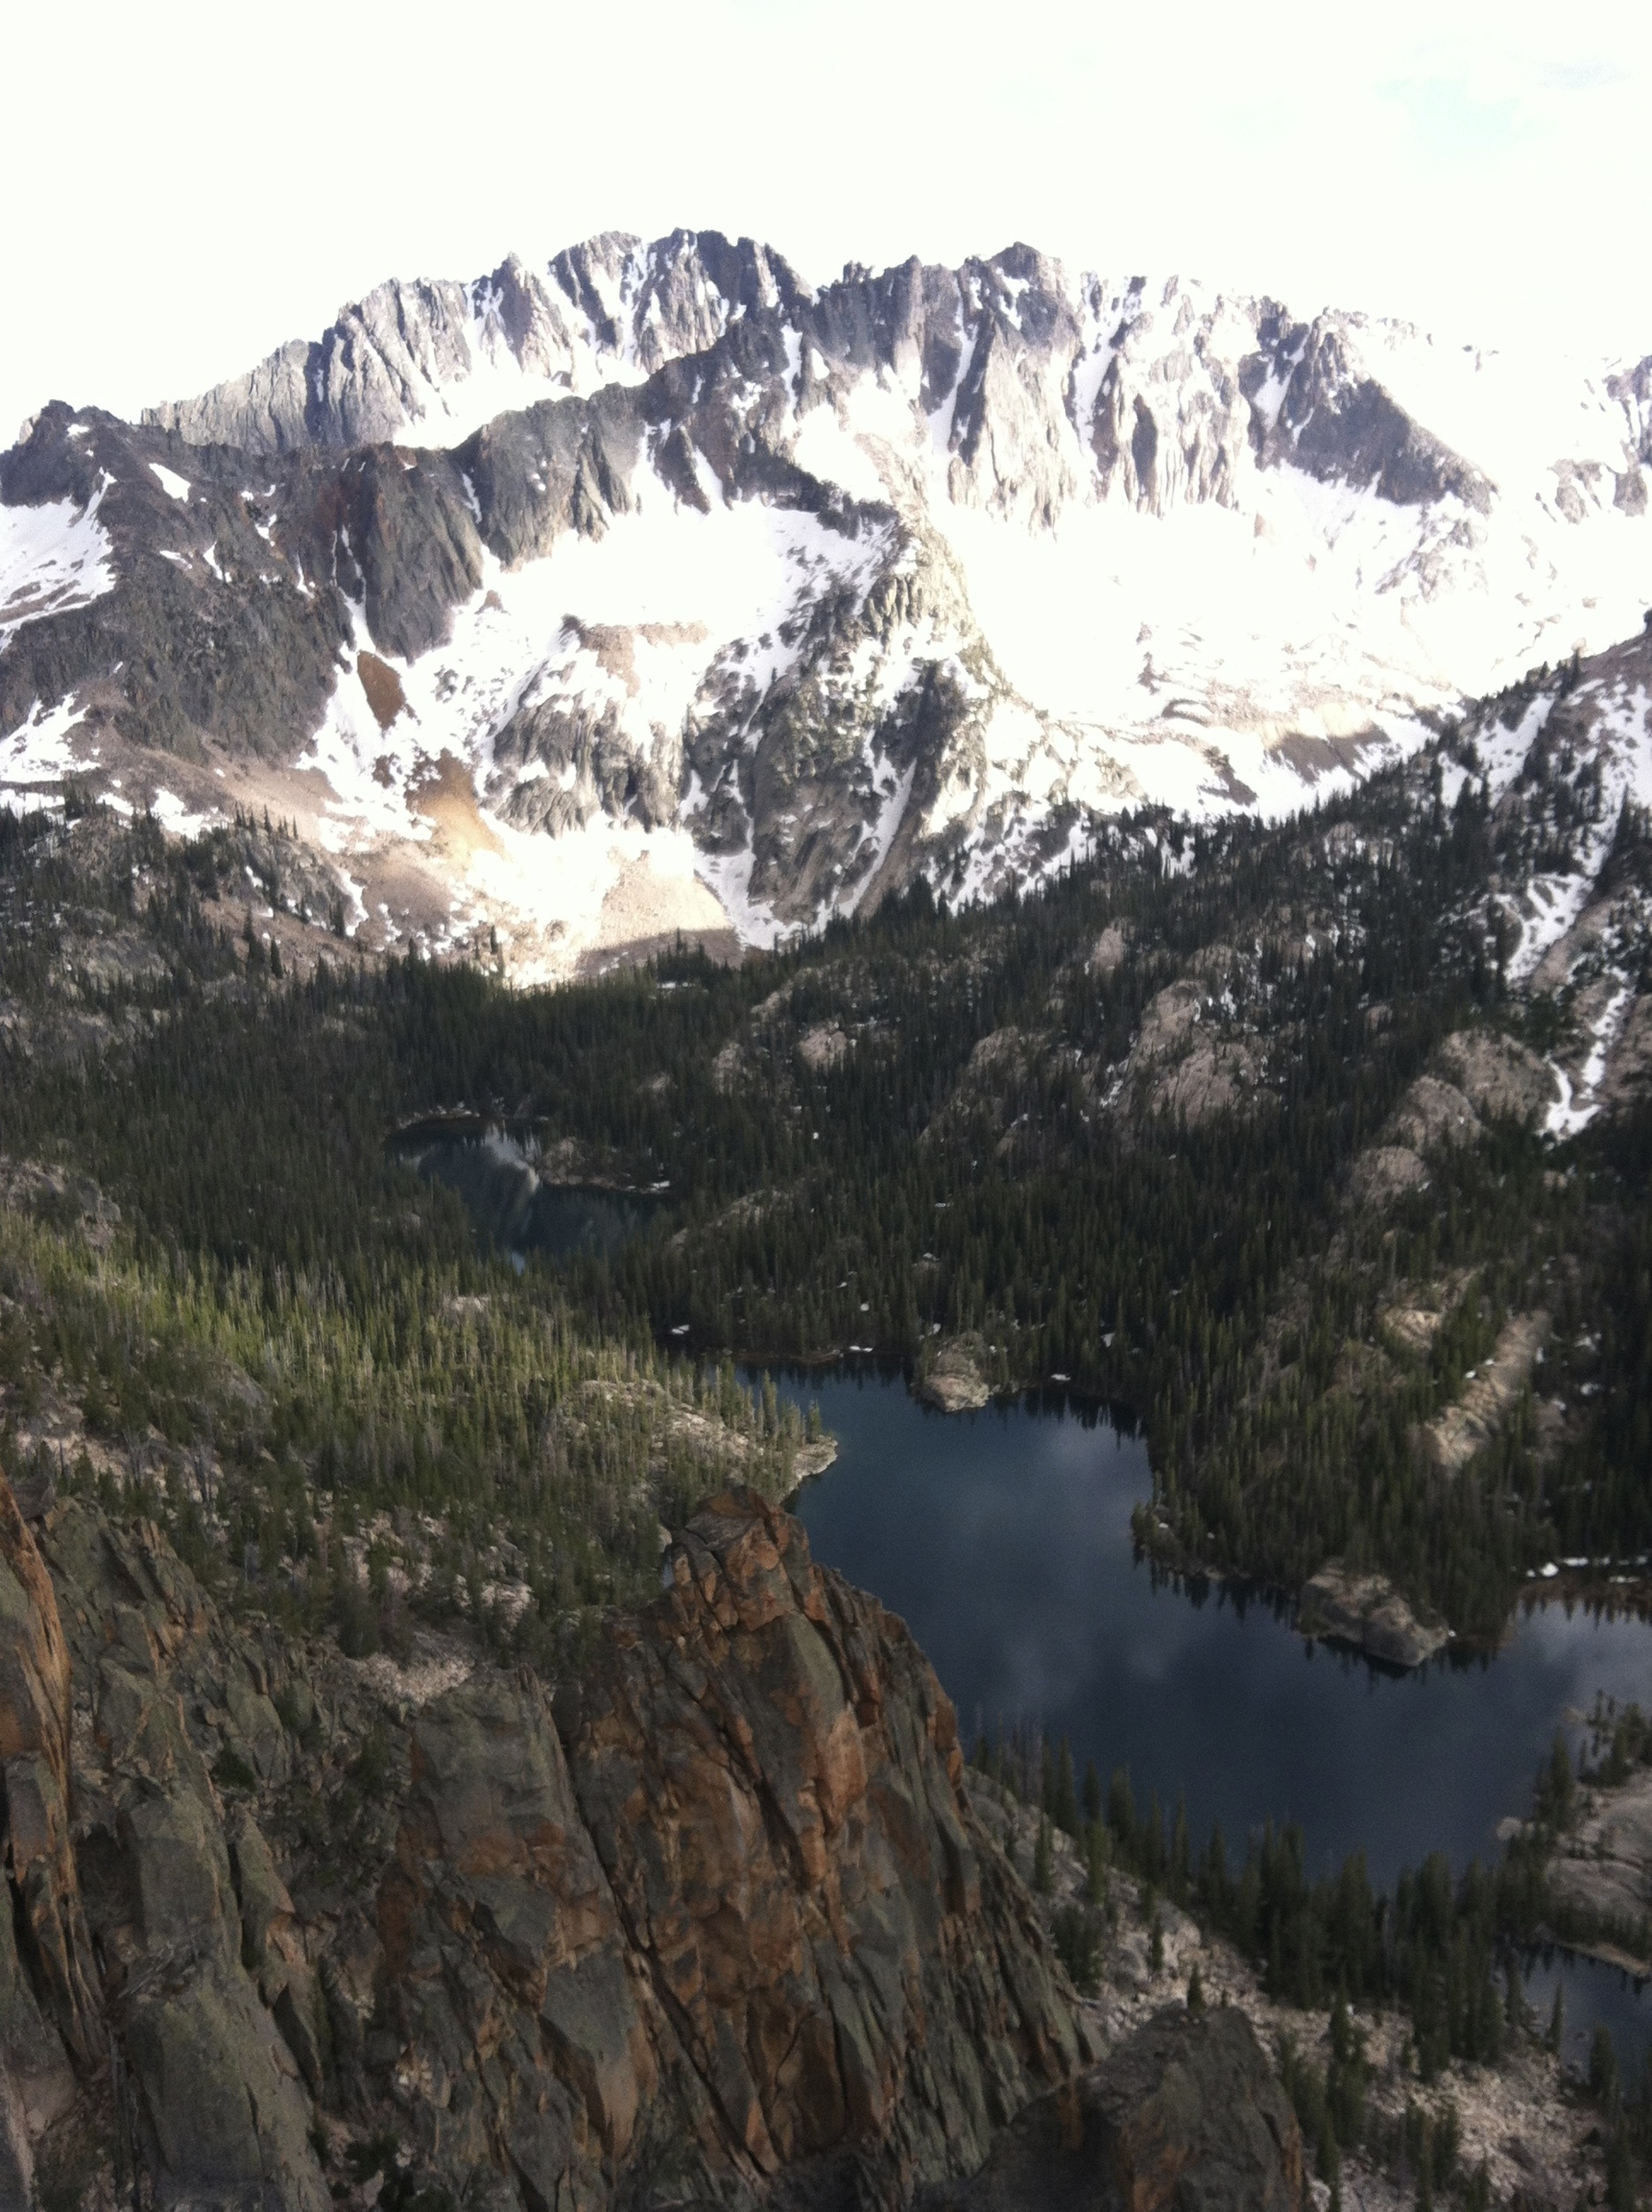 Saddleback Lakes from the South Side of the Perch